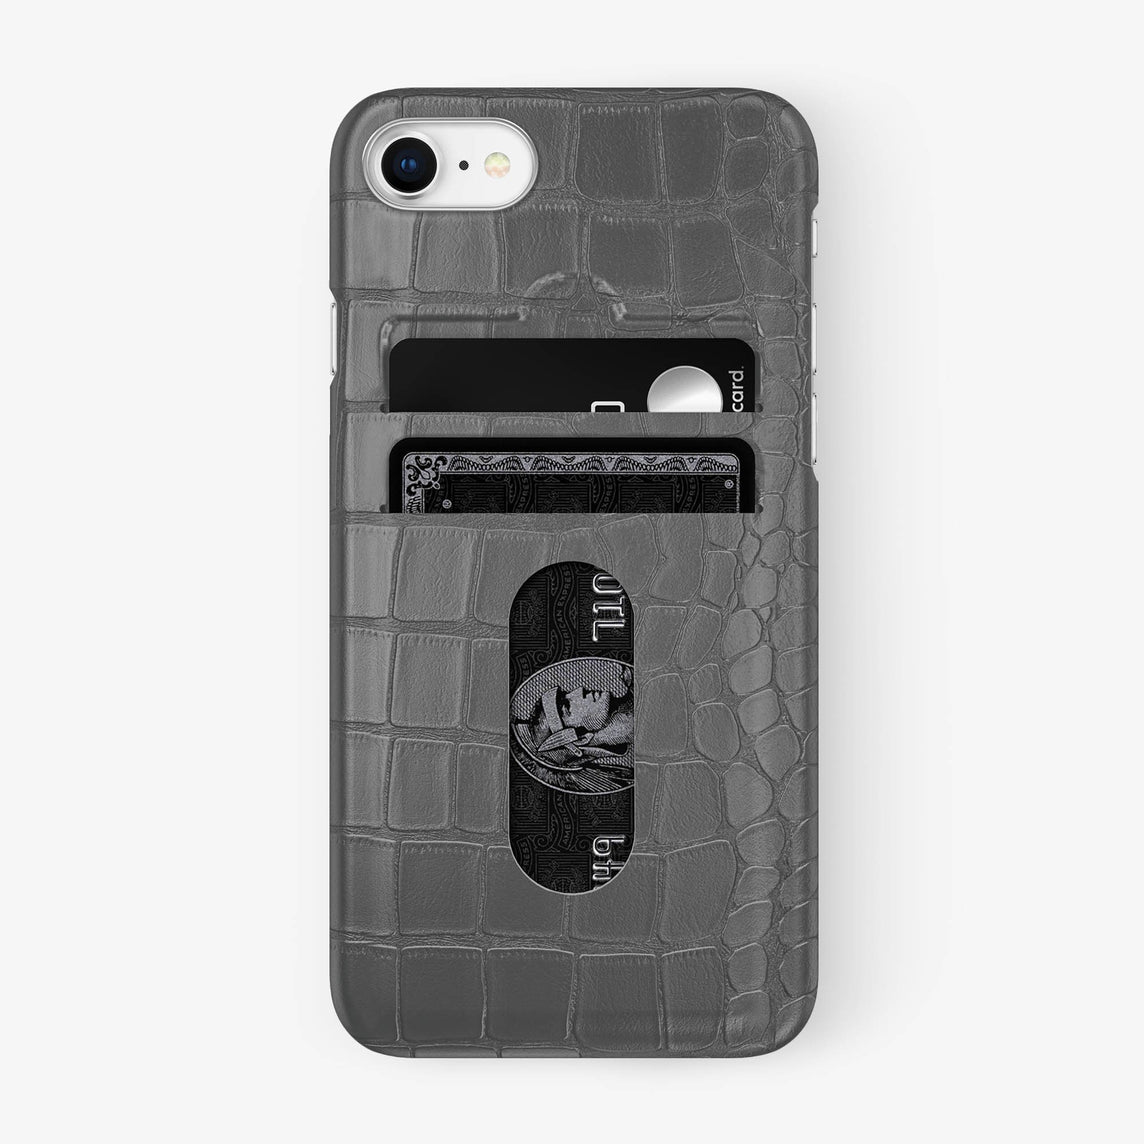 Alligator Card Holder Case iPhone 7/8 | Grey - Stainless Steel